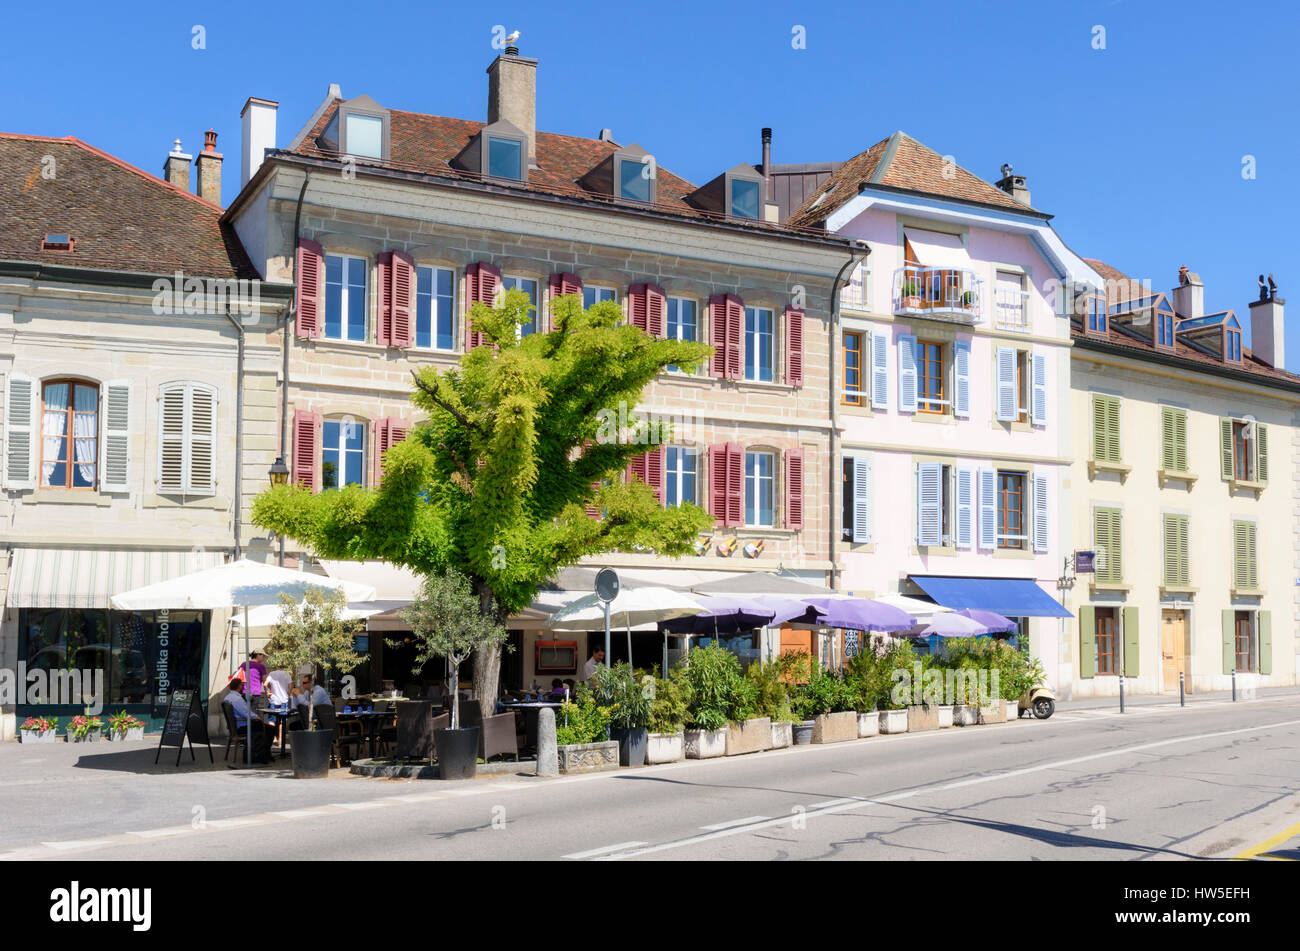 Restaurant in the old town of Nyon, Switzerland - Stock Image